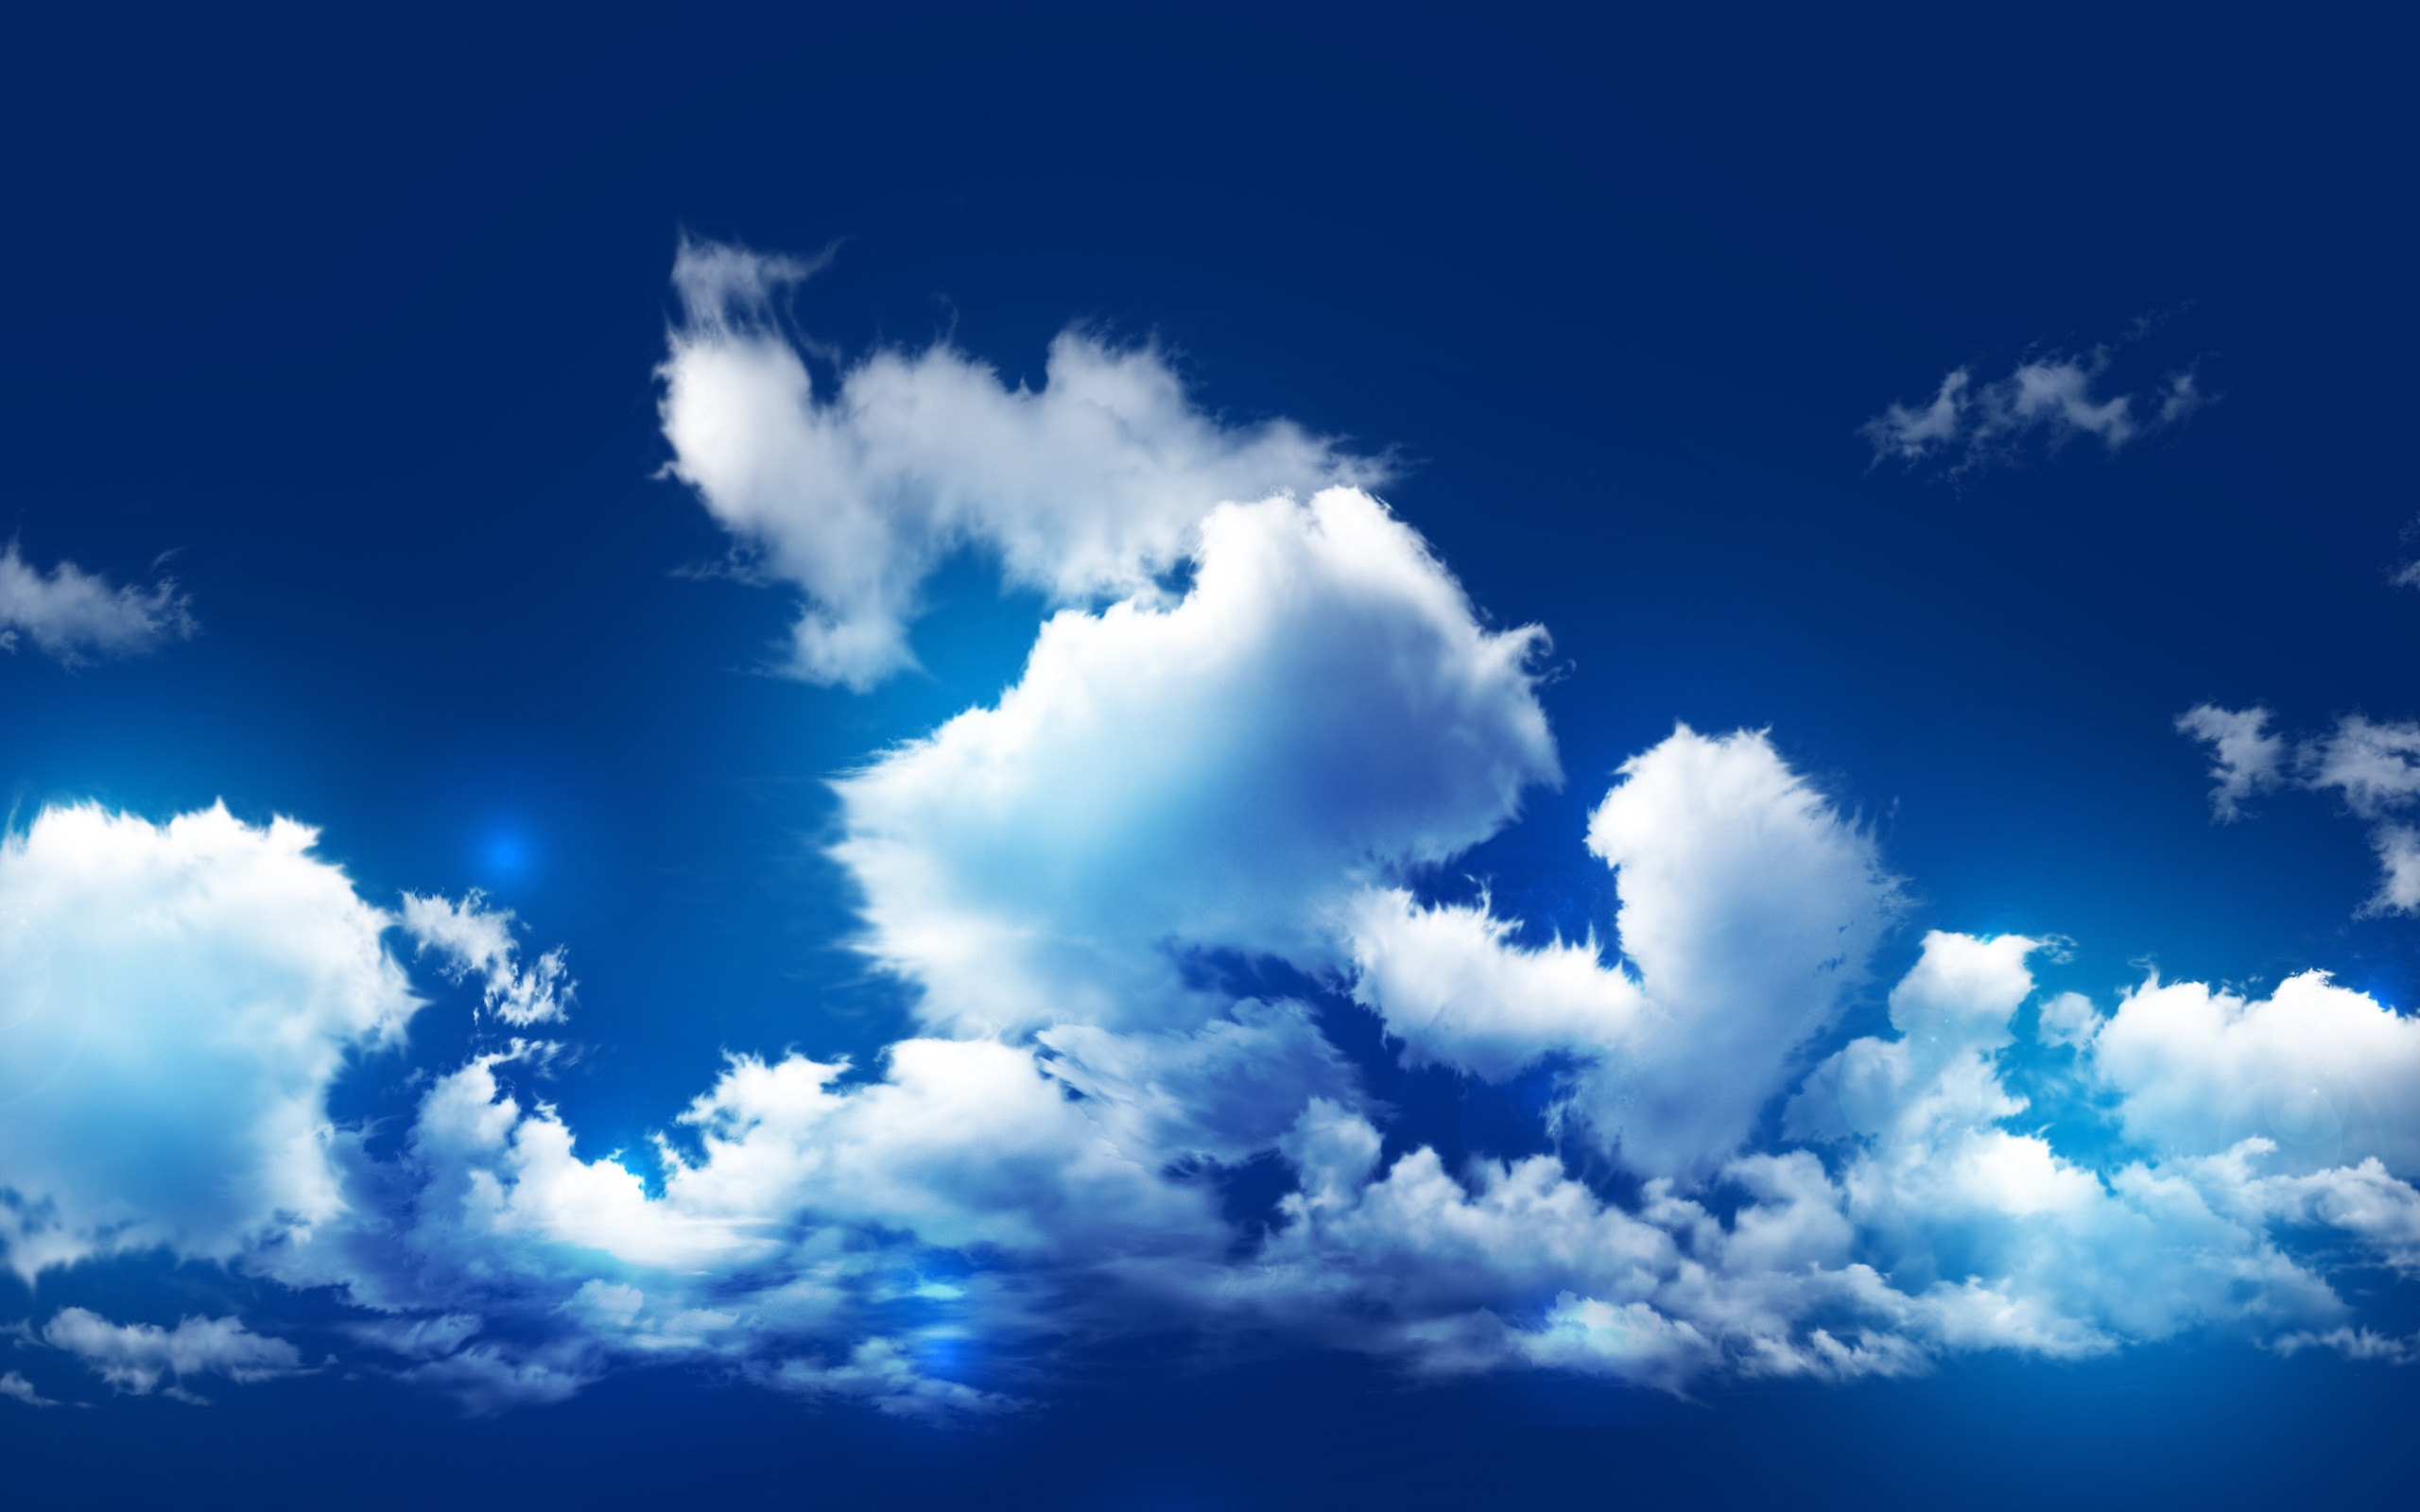 Blue Sky With Clouds Wallpaper 56 Images